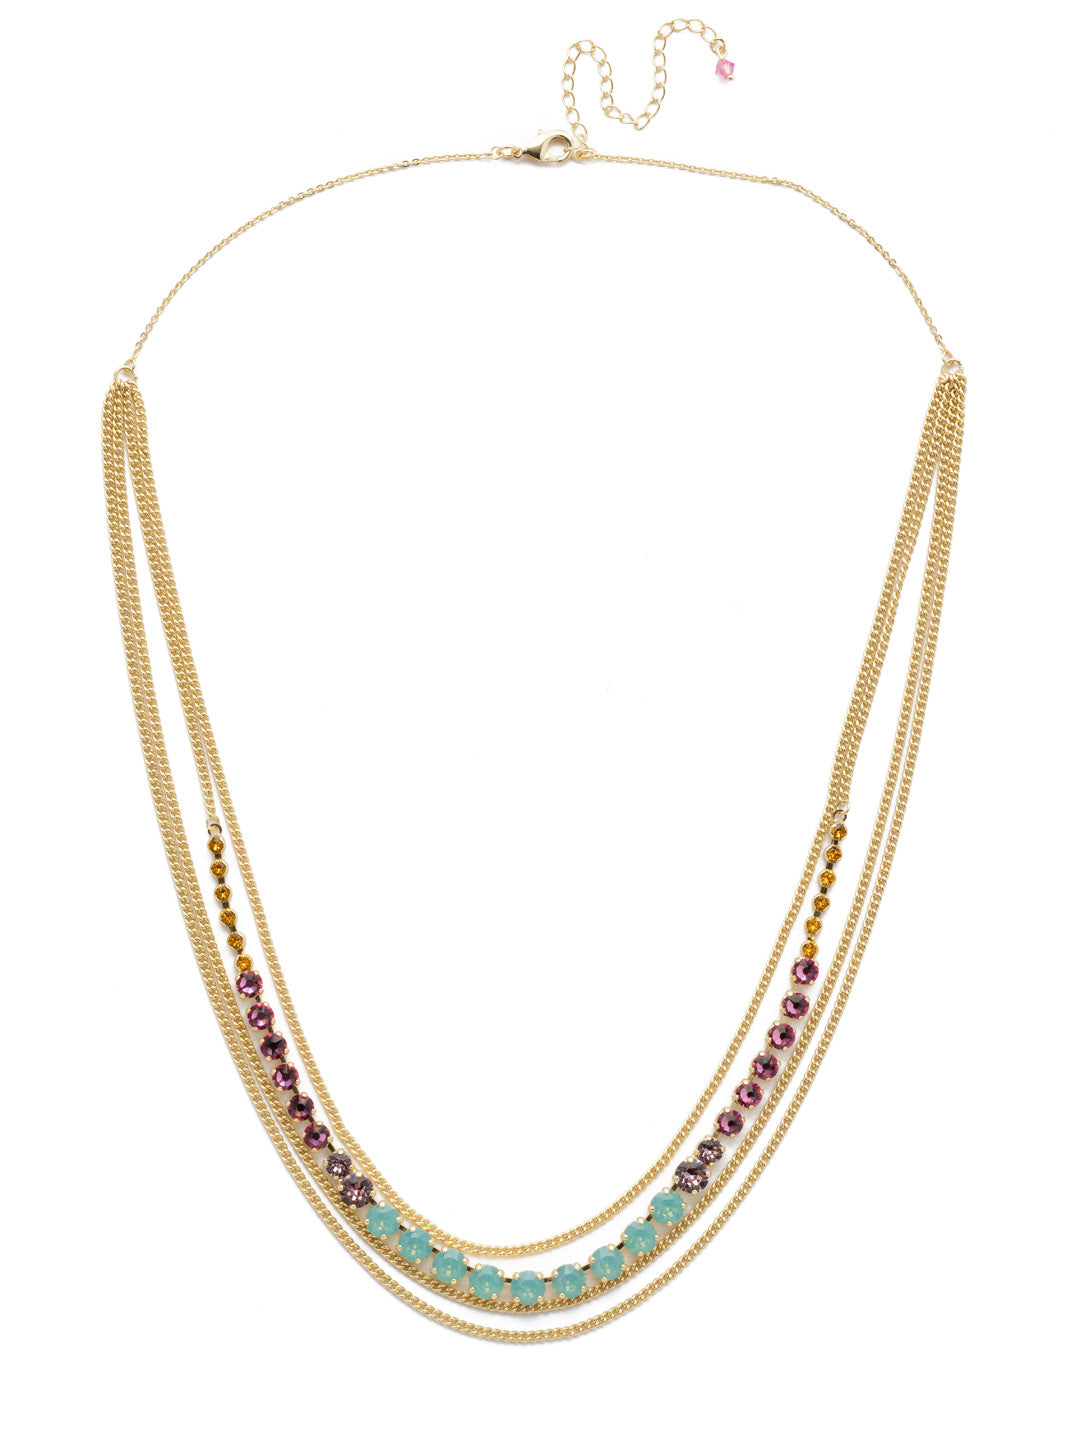 Layer It On Multi-Strand Layered Necklace - NCR73BGCPO